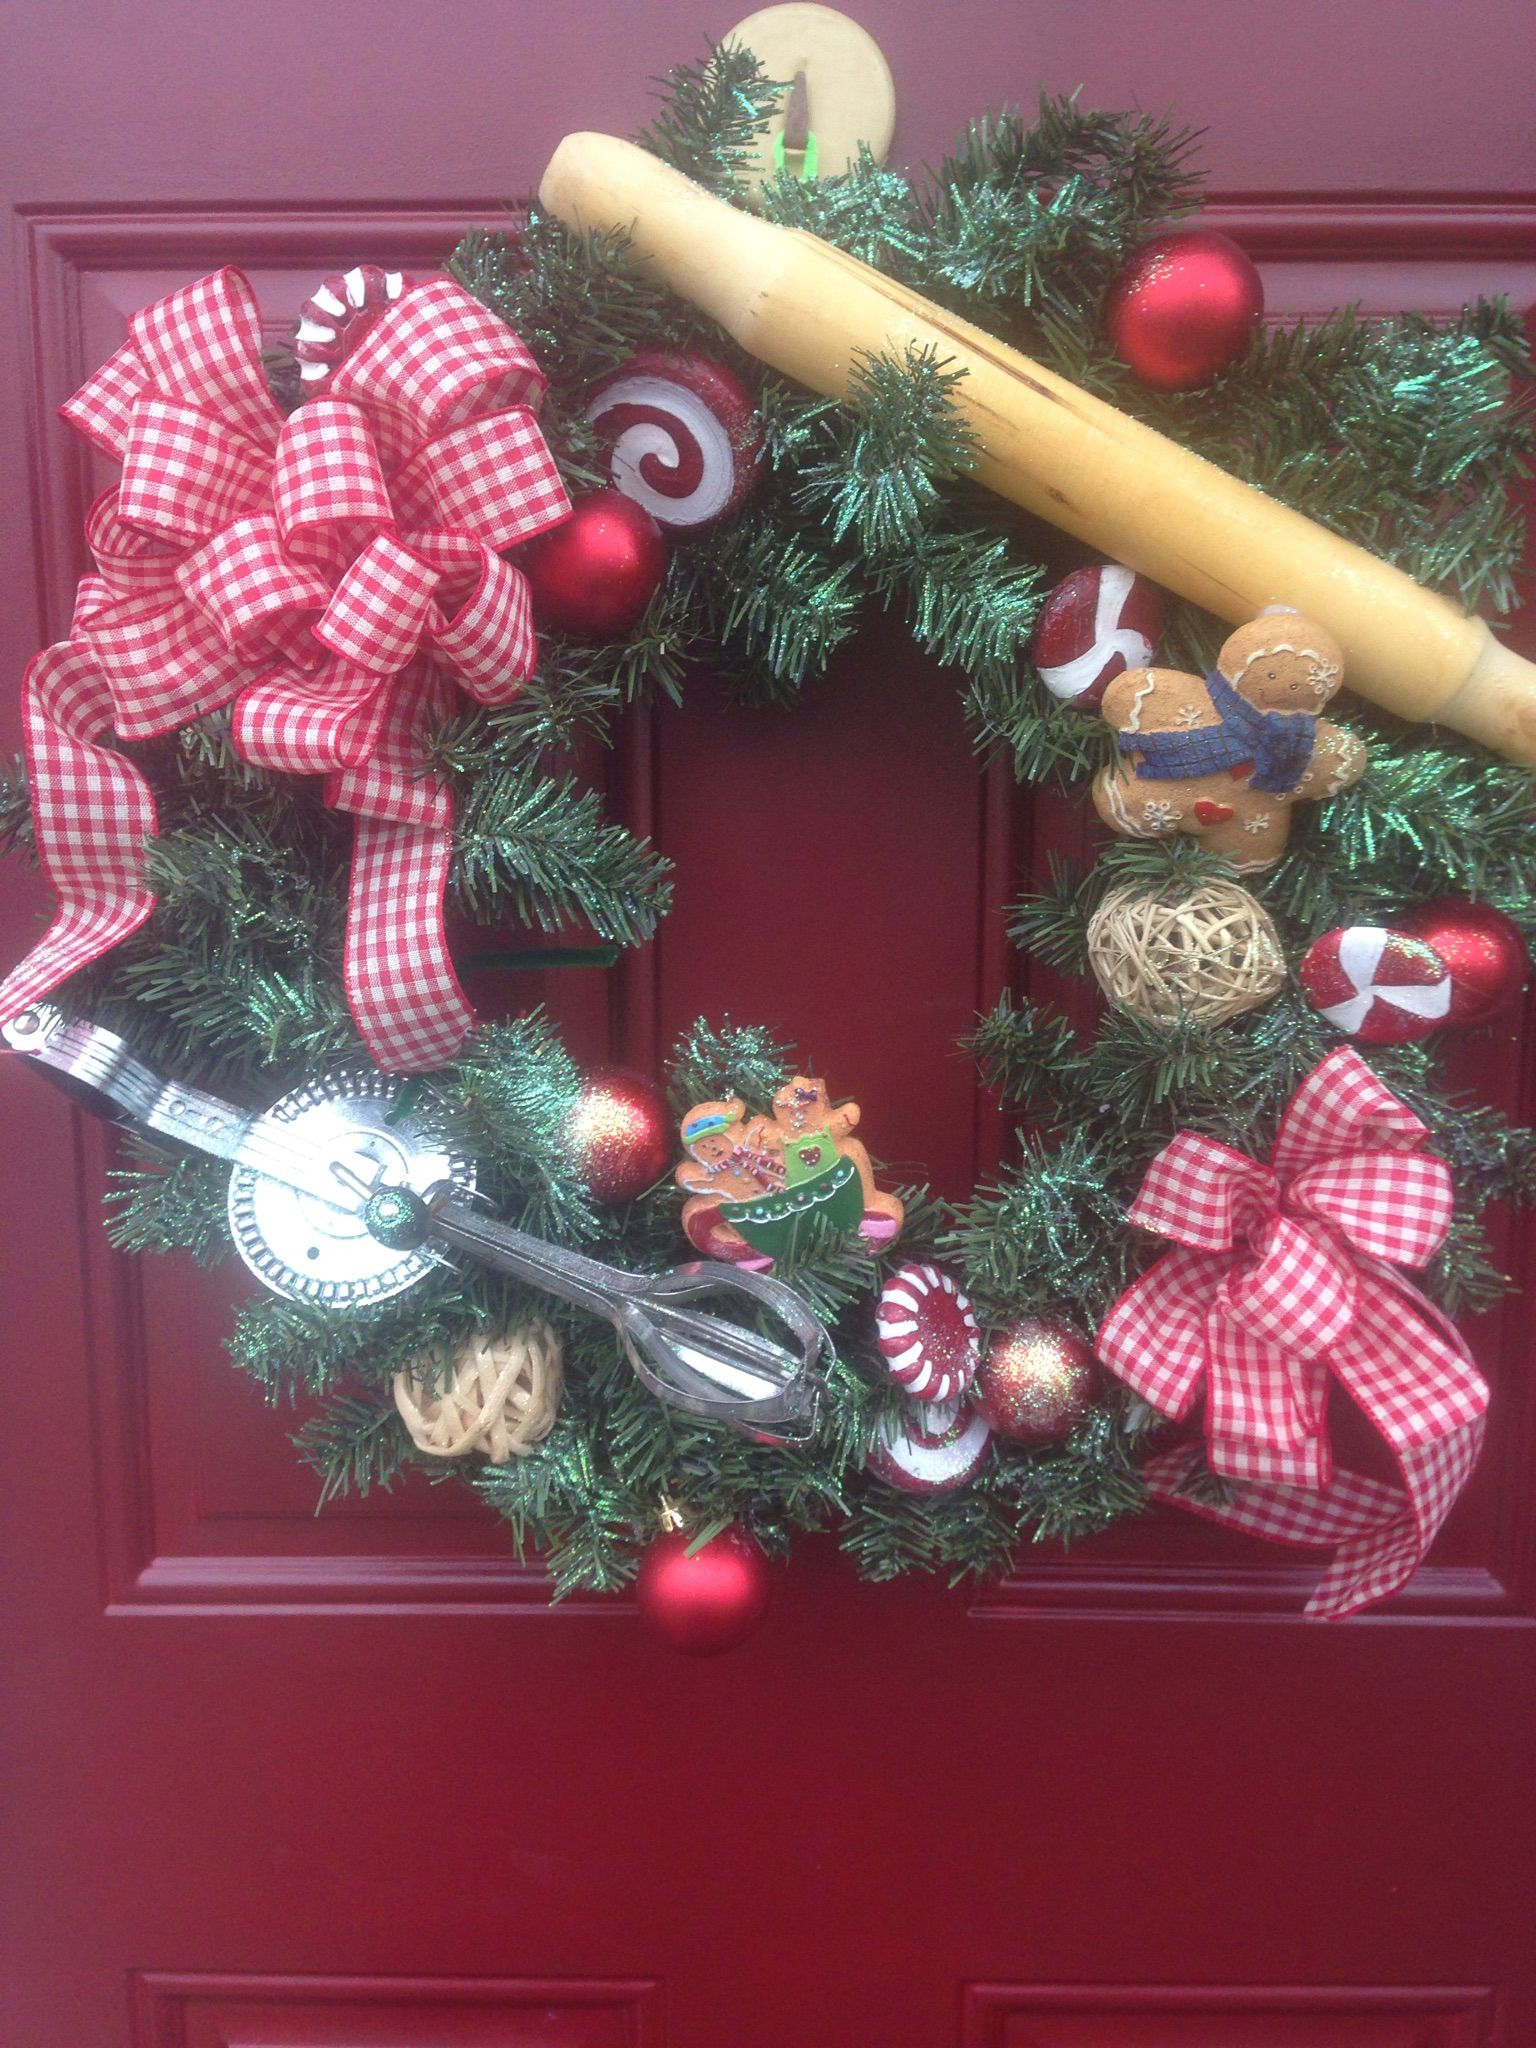 Antique Baking Wreath $53 on Facebook: Wreaths by Cherie